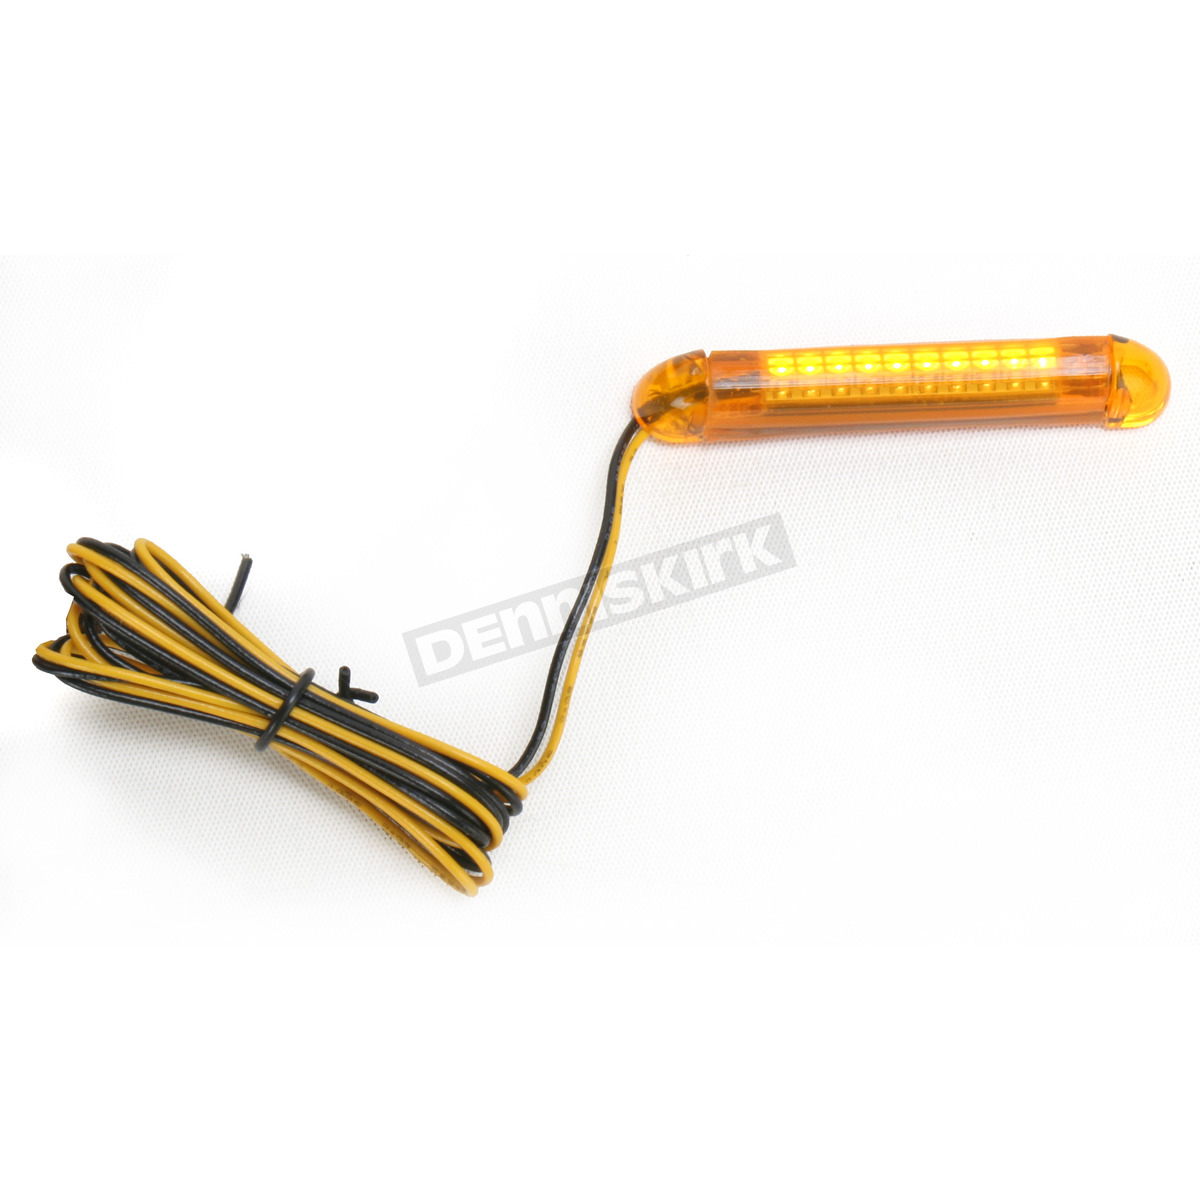 Custom Dynamics Truflex 10 Amber Led With Tubing Professional Electrical Wire Flexible Pipe Grade Lighting Strip Tf10aa